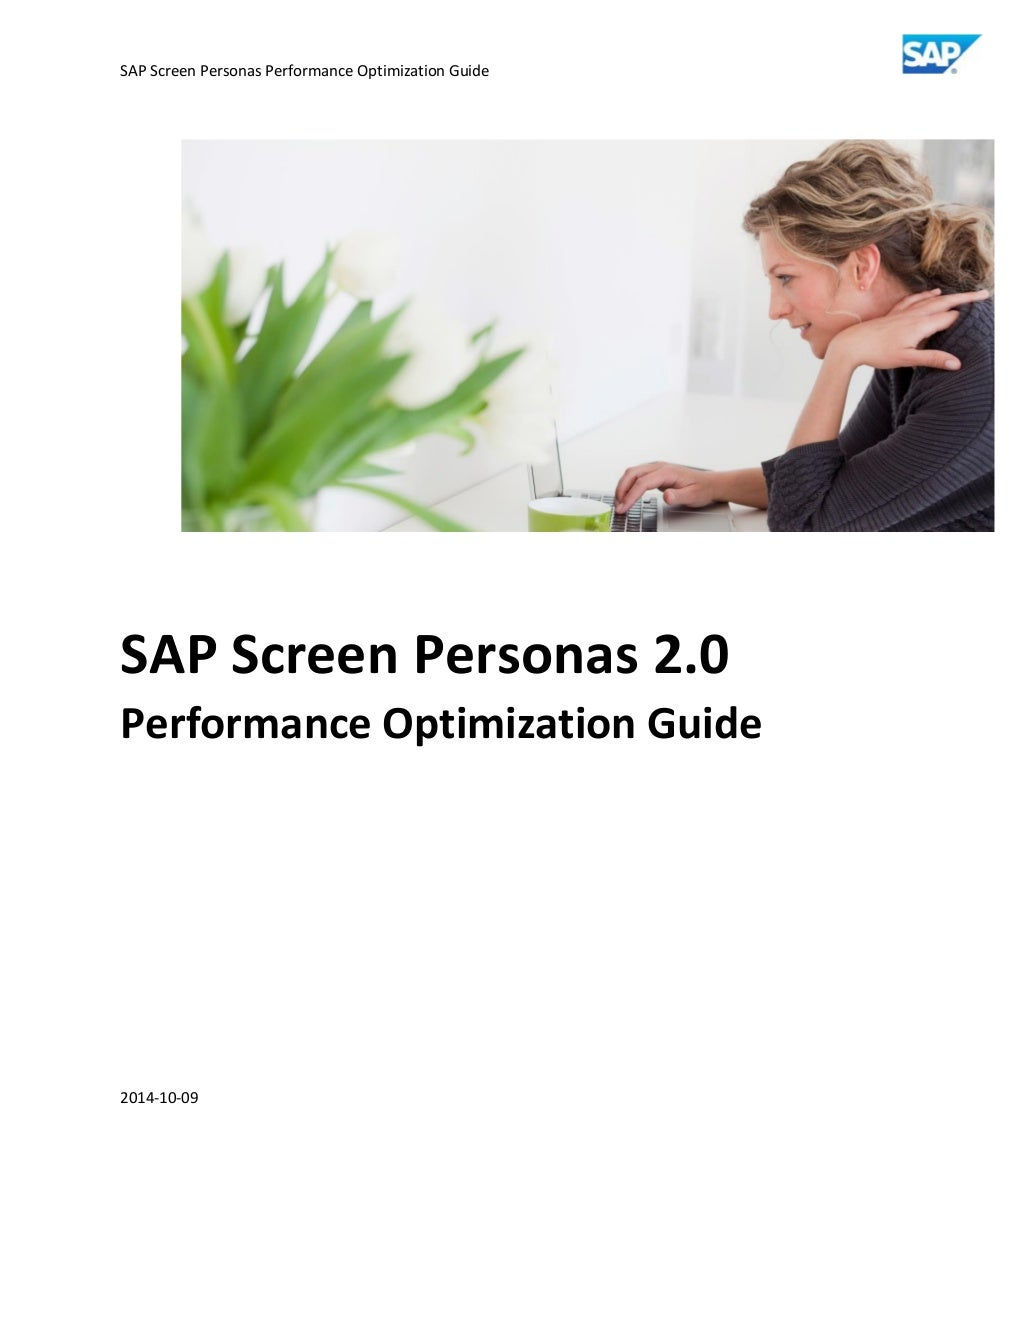 Sap screen personas performance optimization guide v0.96